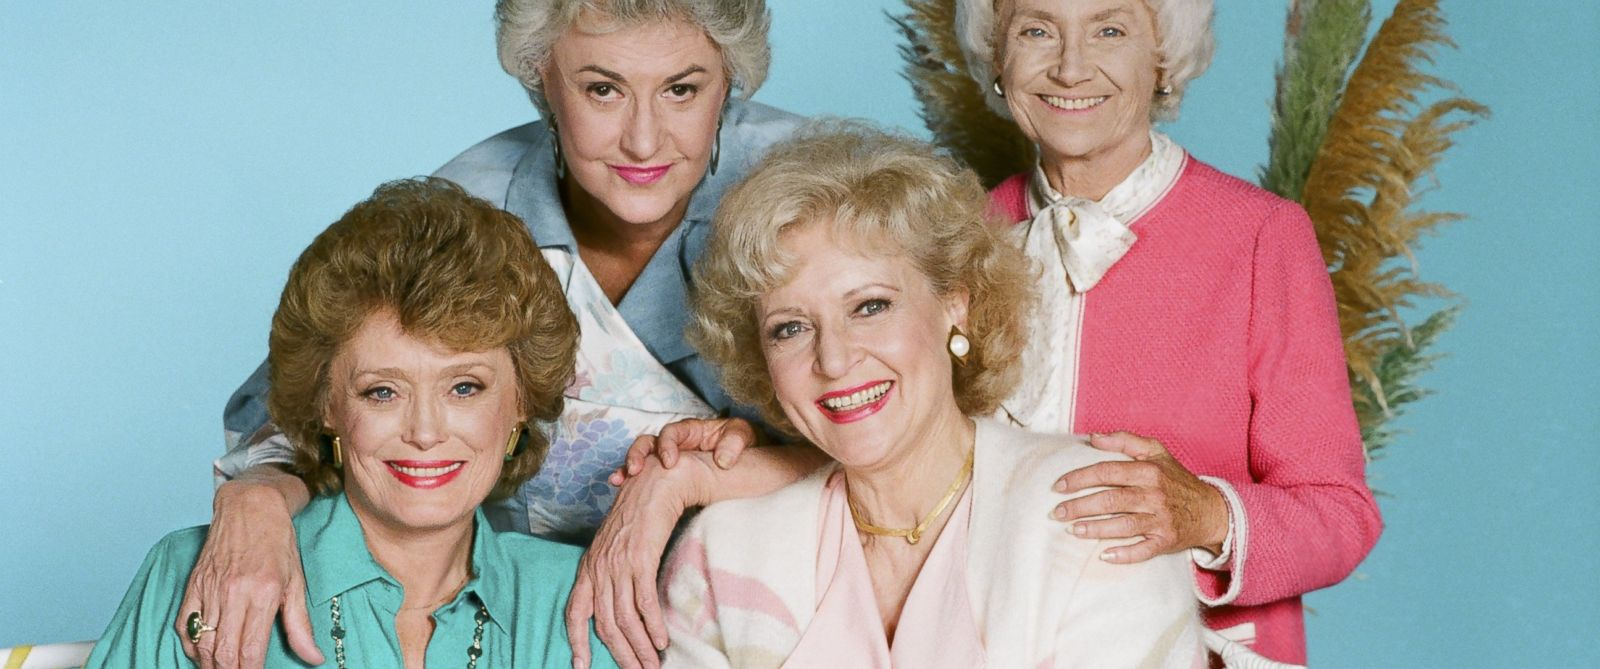 39 The Golden Girls 39 Turns 30 Facts You May Not Know About